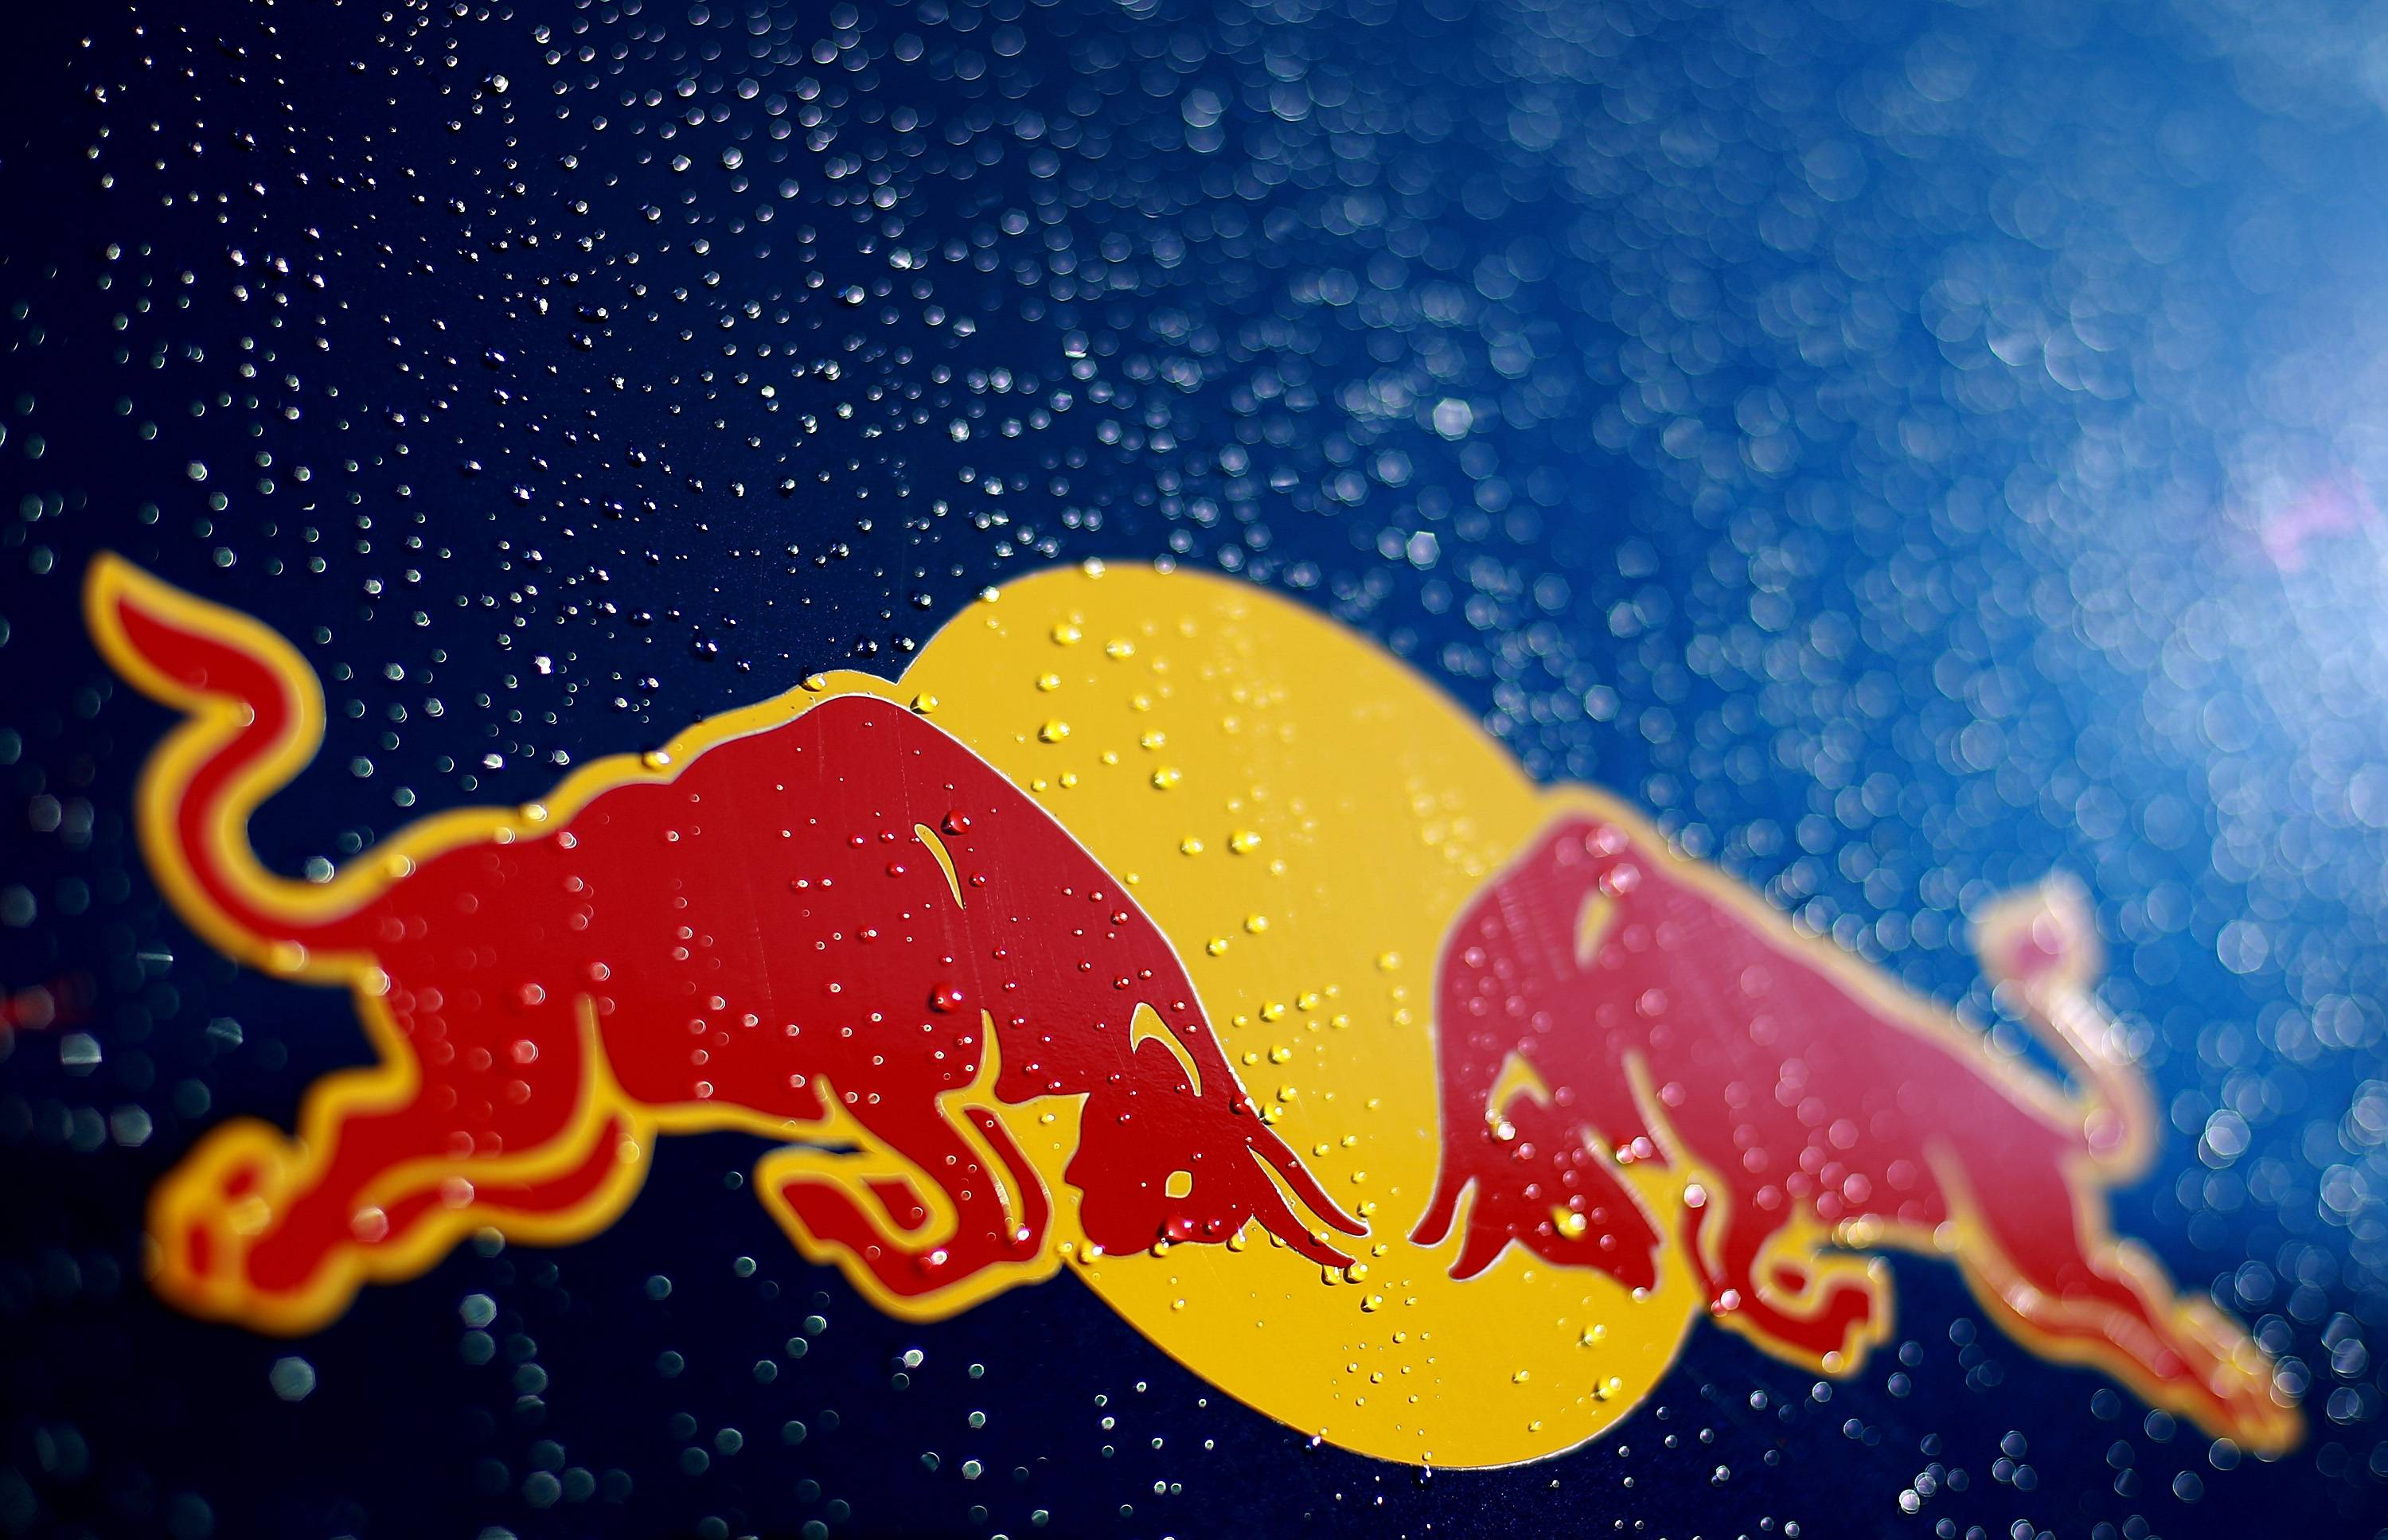 Red Bull Logo Wallpapers